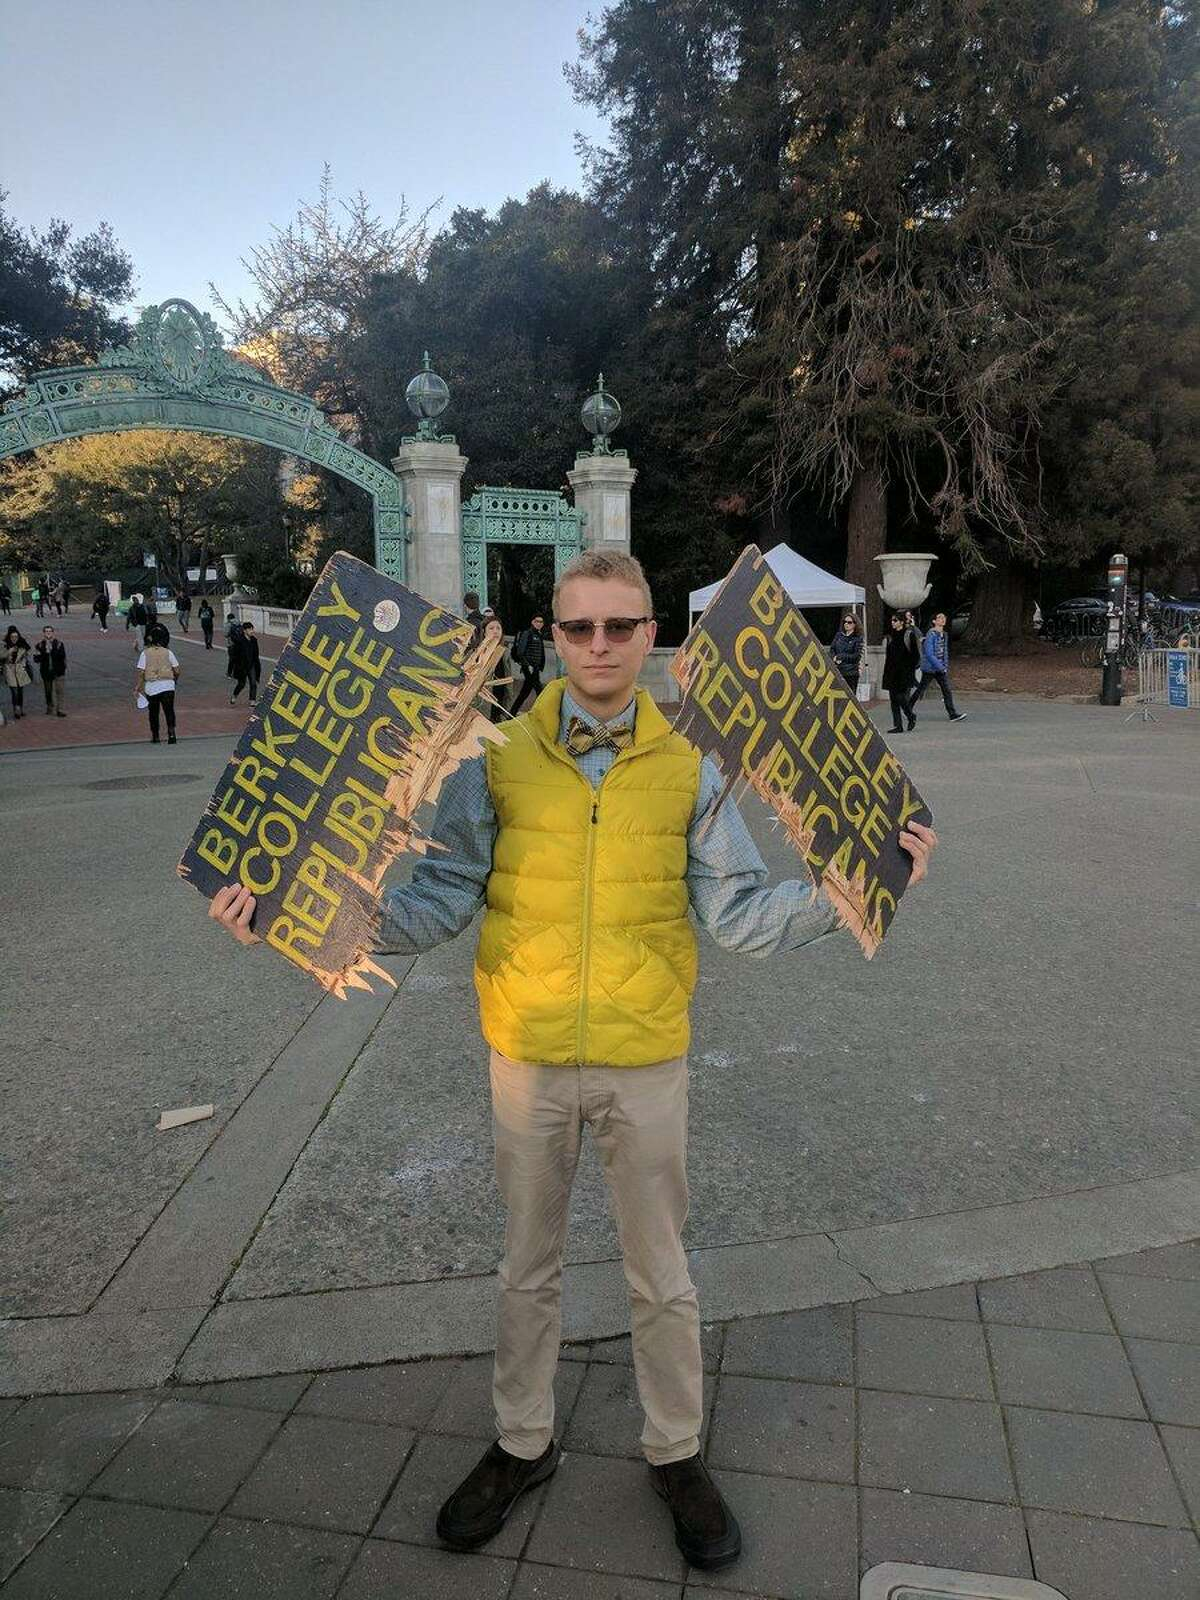 Troy Worden, a member of the Berkeley College Republicans and third year student, displays one of the group's signs that was destroyed on campus Tuesday evening.